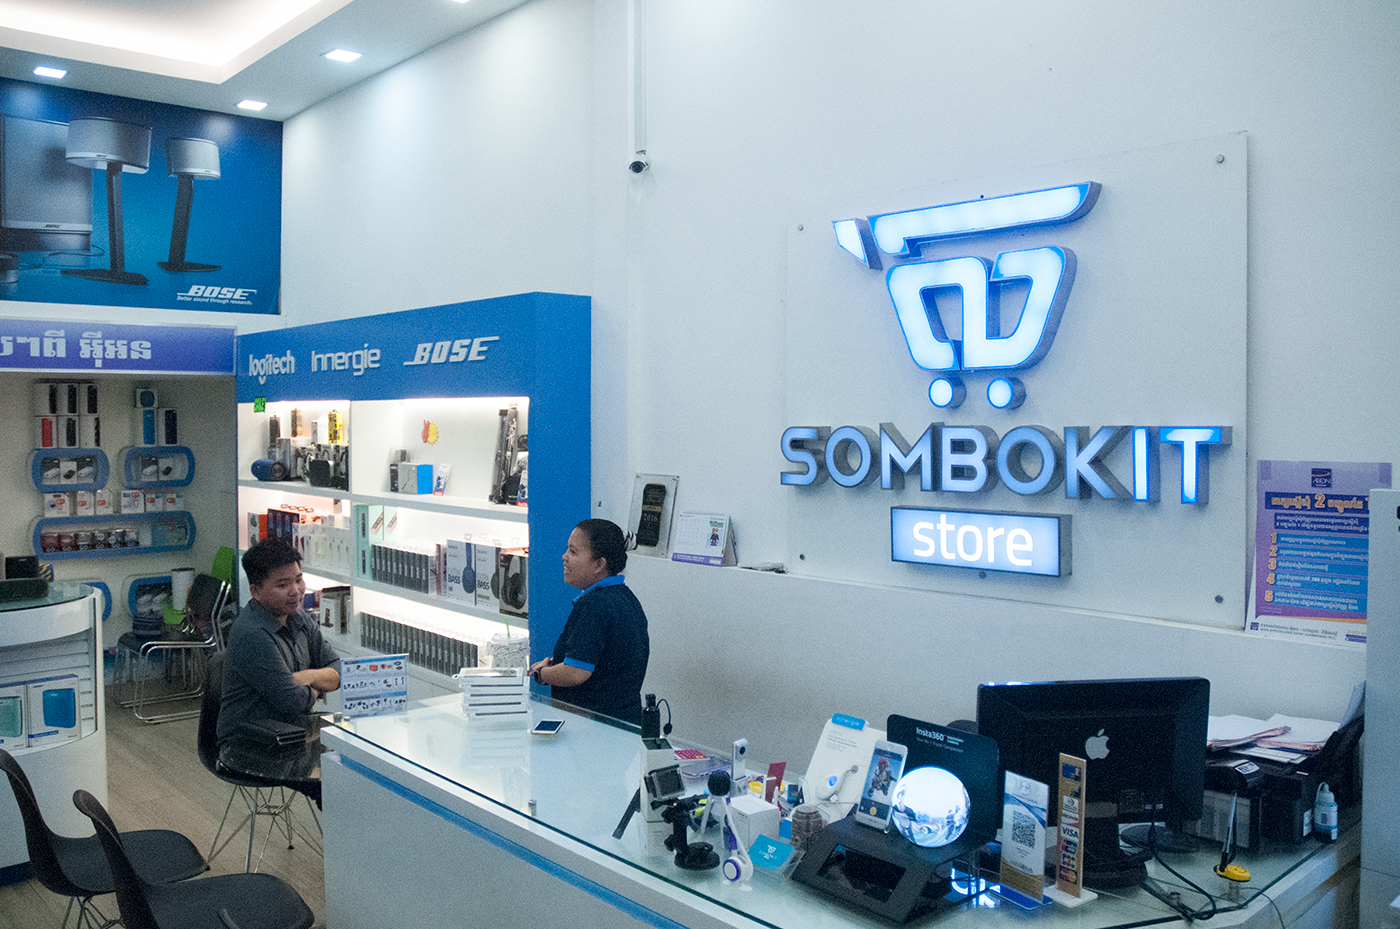 Sombok-IT Store, Sopheak's first shop